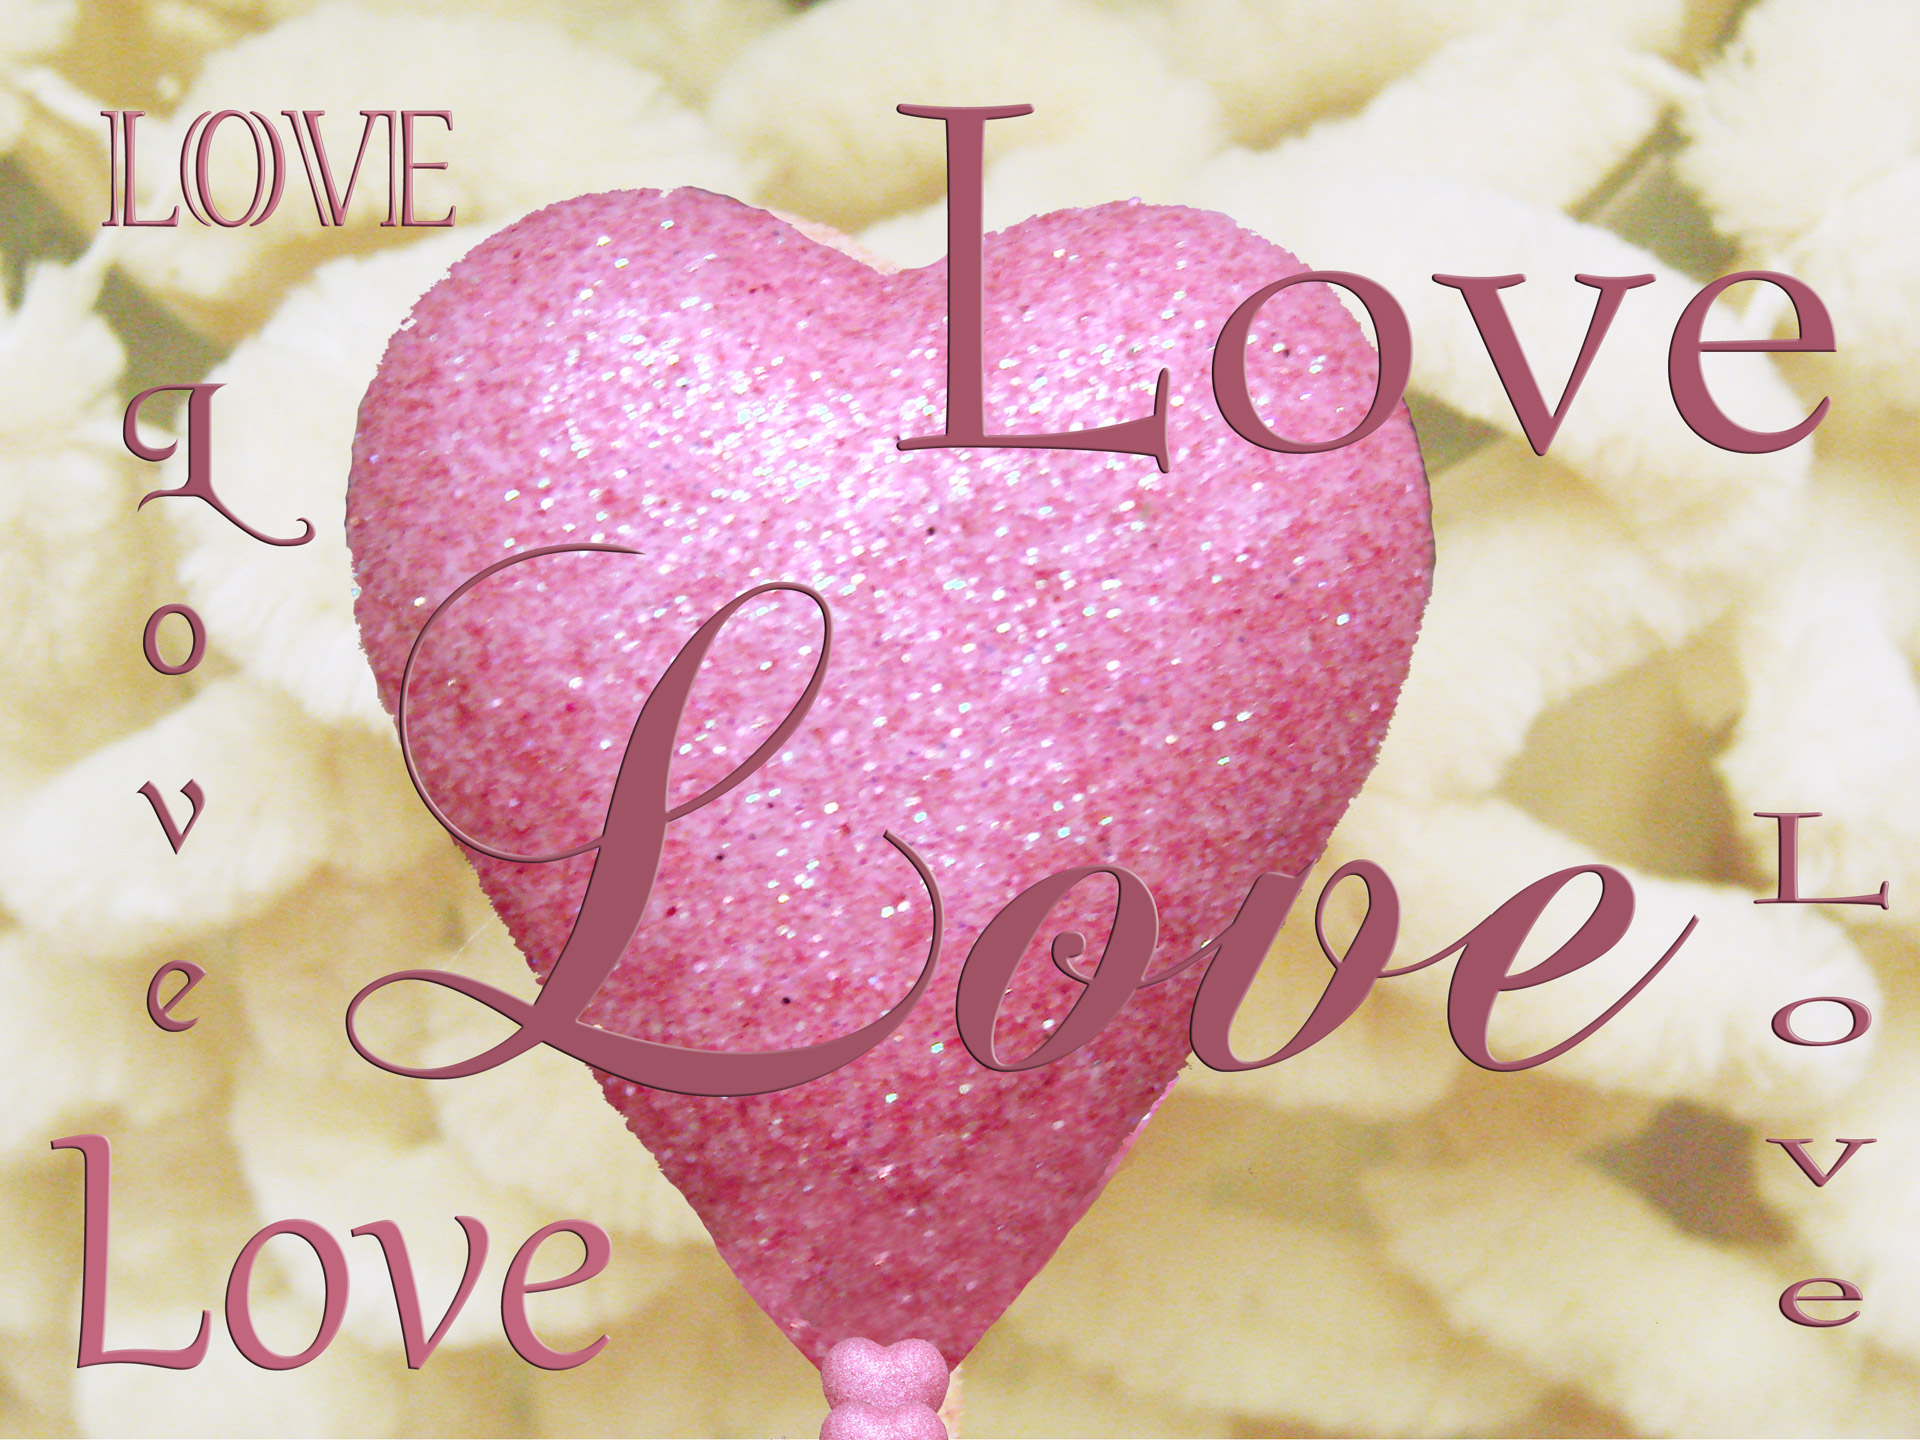 Cute Wallpaper Quotes Download Love Amp Glitter Free Stock Photo Public Domain Pictures